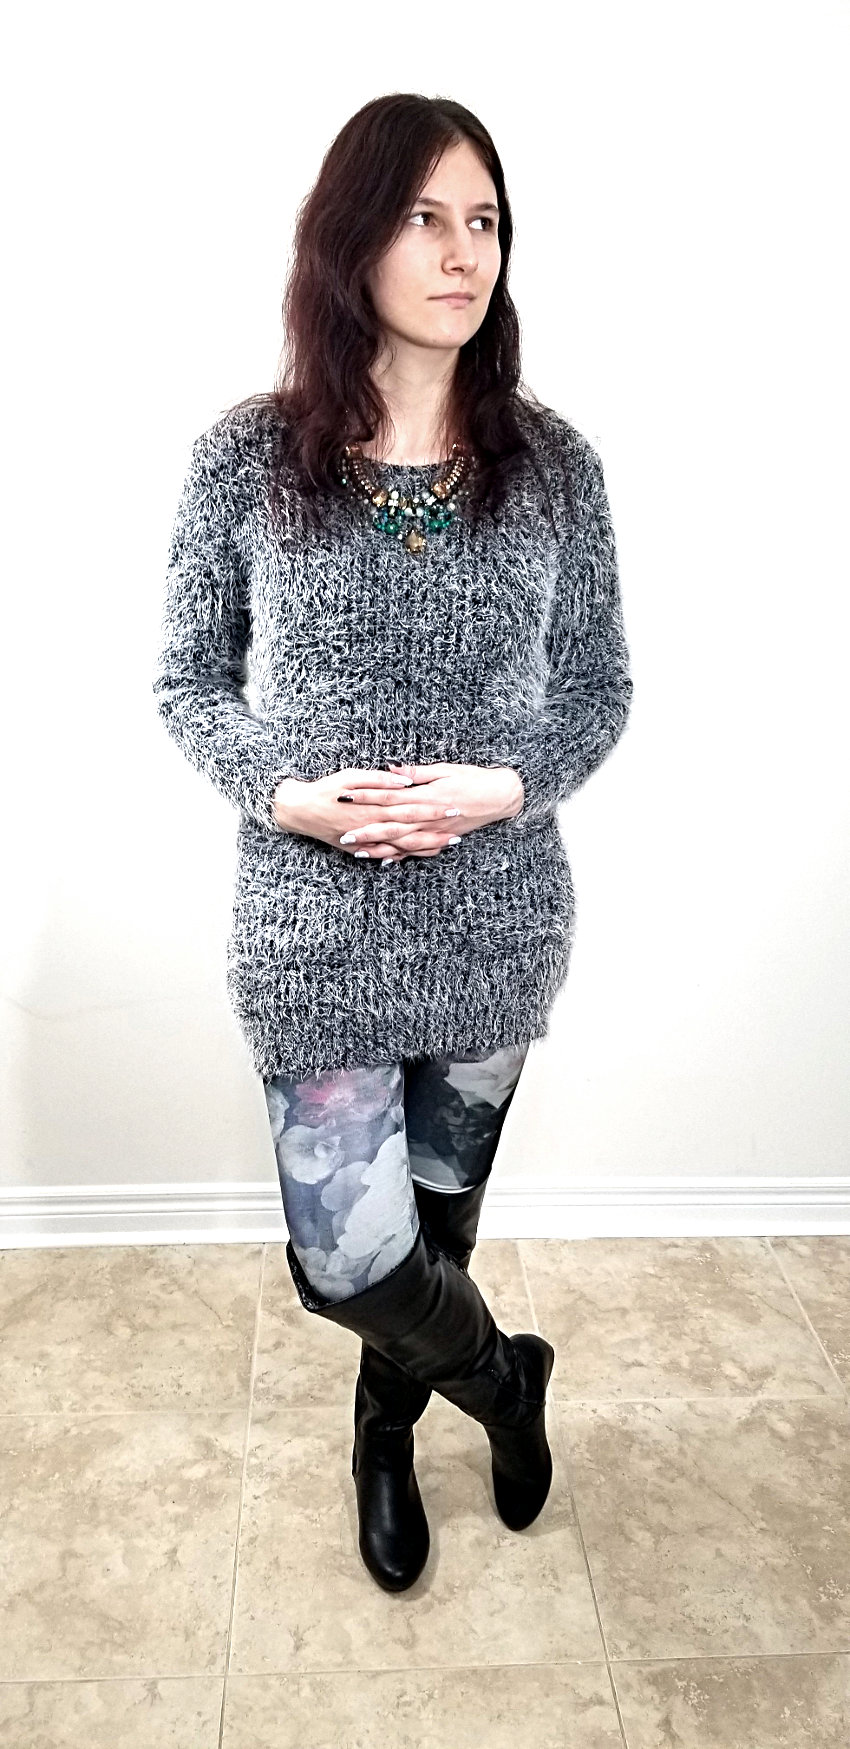 Polar Bear Style Fuzzy Grey Sweater Dress Floral Leggings Green Necklace Tall Black Boots